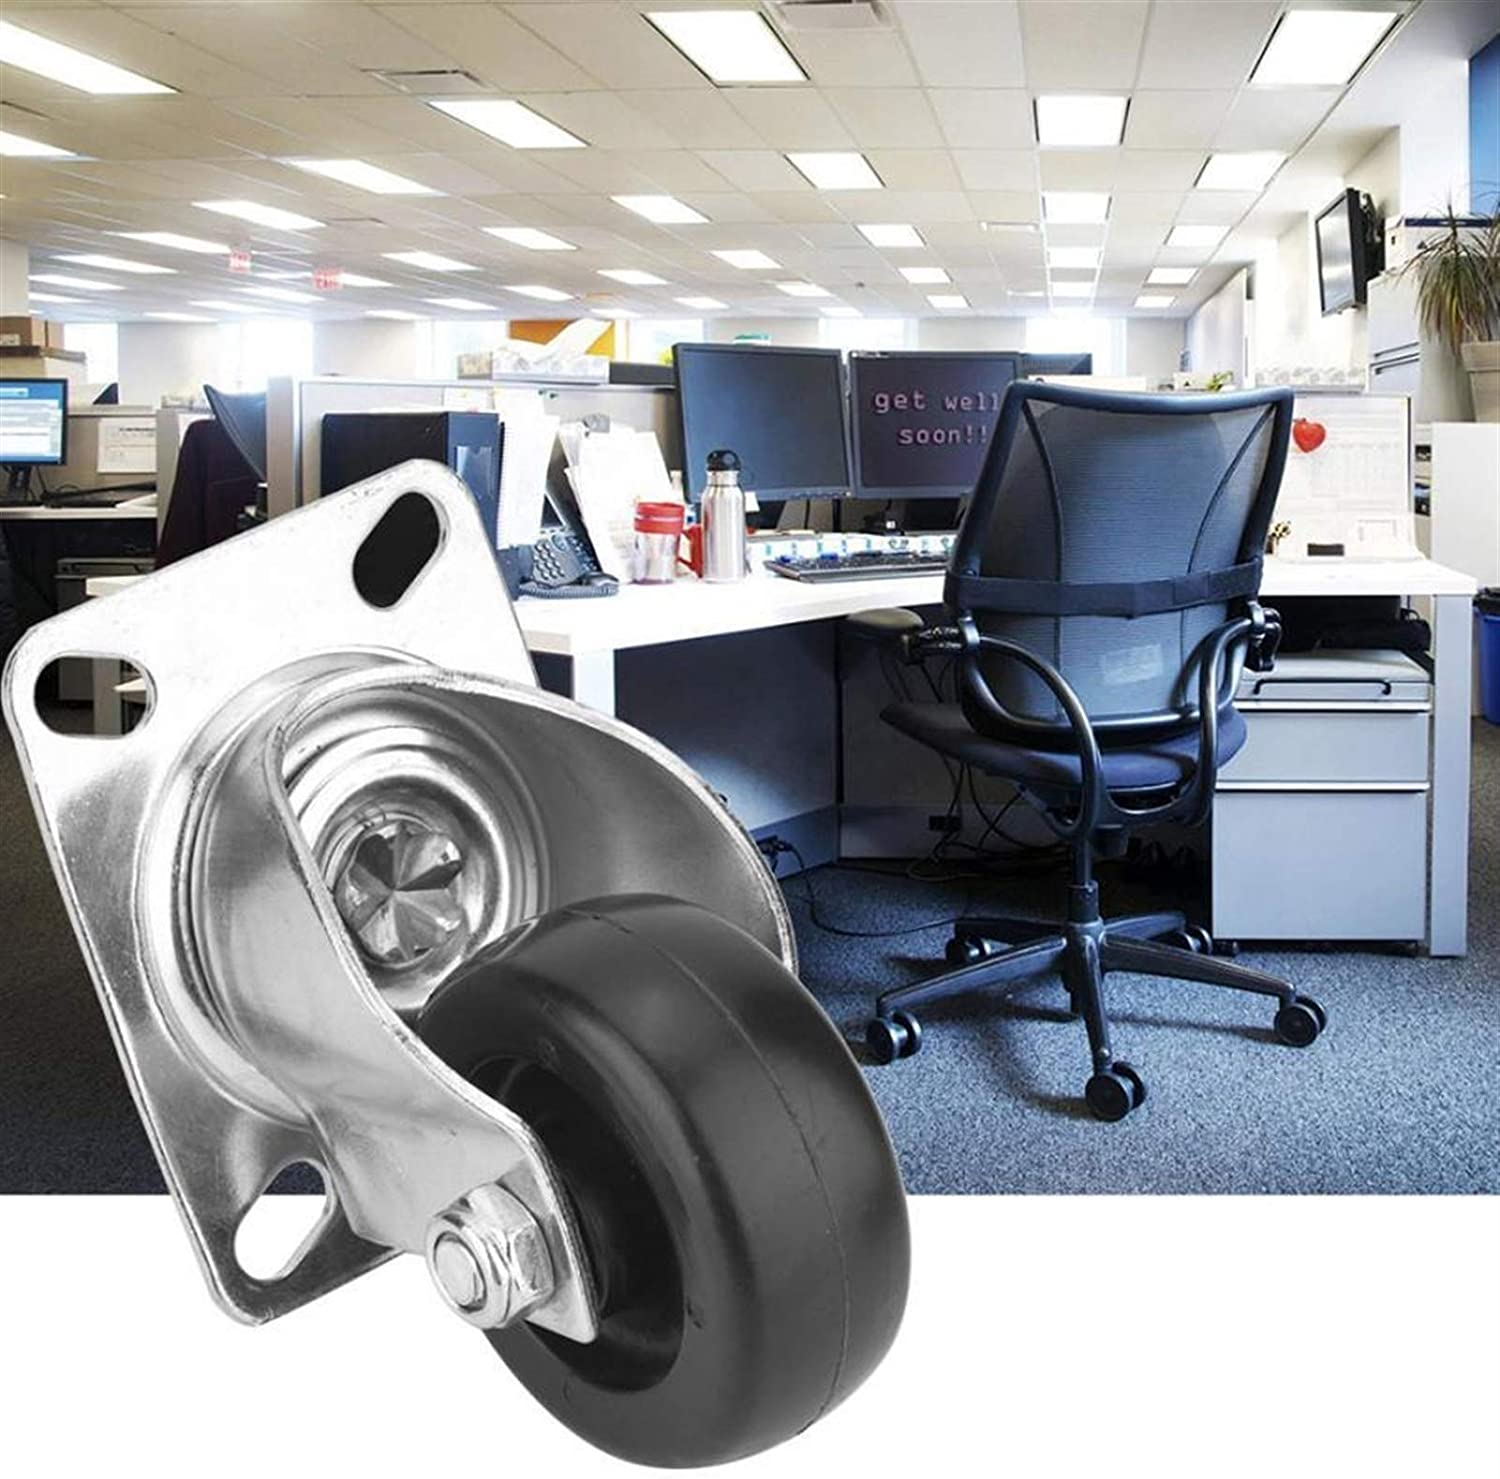 LDDJ Casters Rubber Wheels for Office Chairs 3 Inch Swivel Top Plate Hooded Caster PP Wheel for Furniture Trolley Castor Wheels Durable